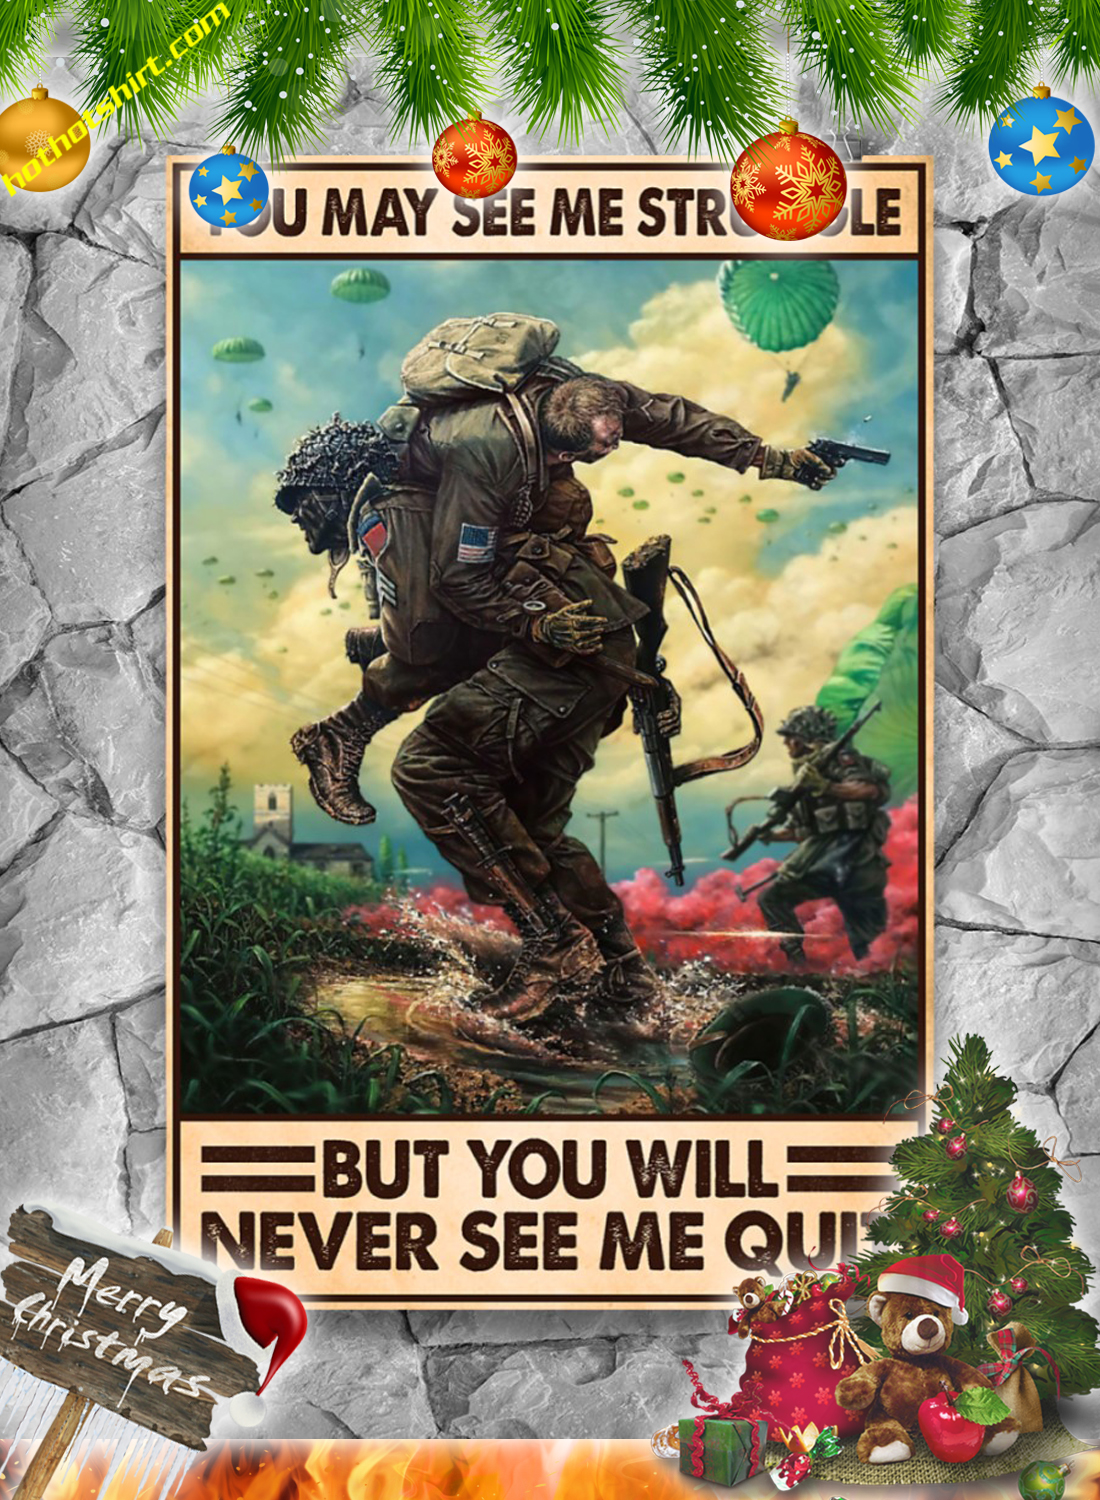 Veteran You may see me struggle but you will never see me quit poster 1